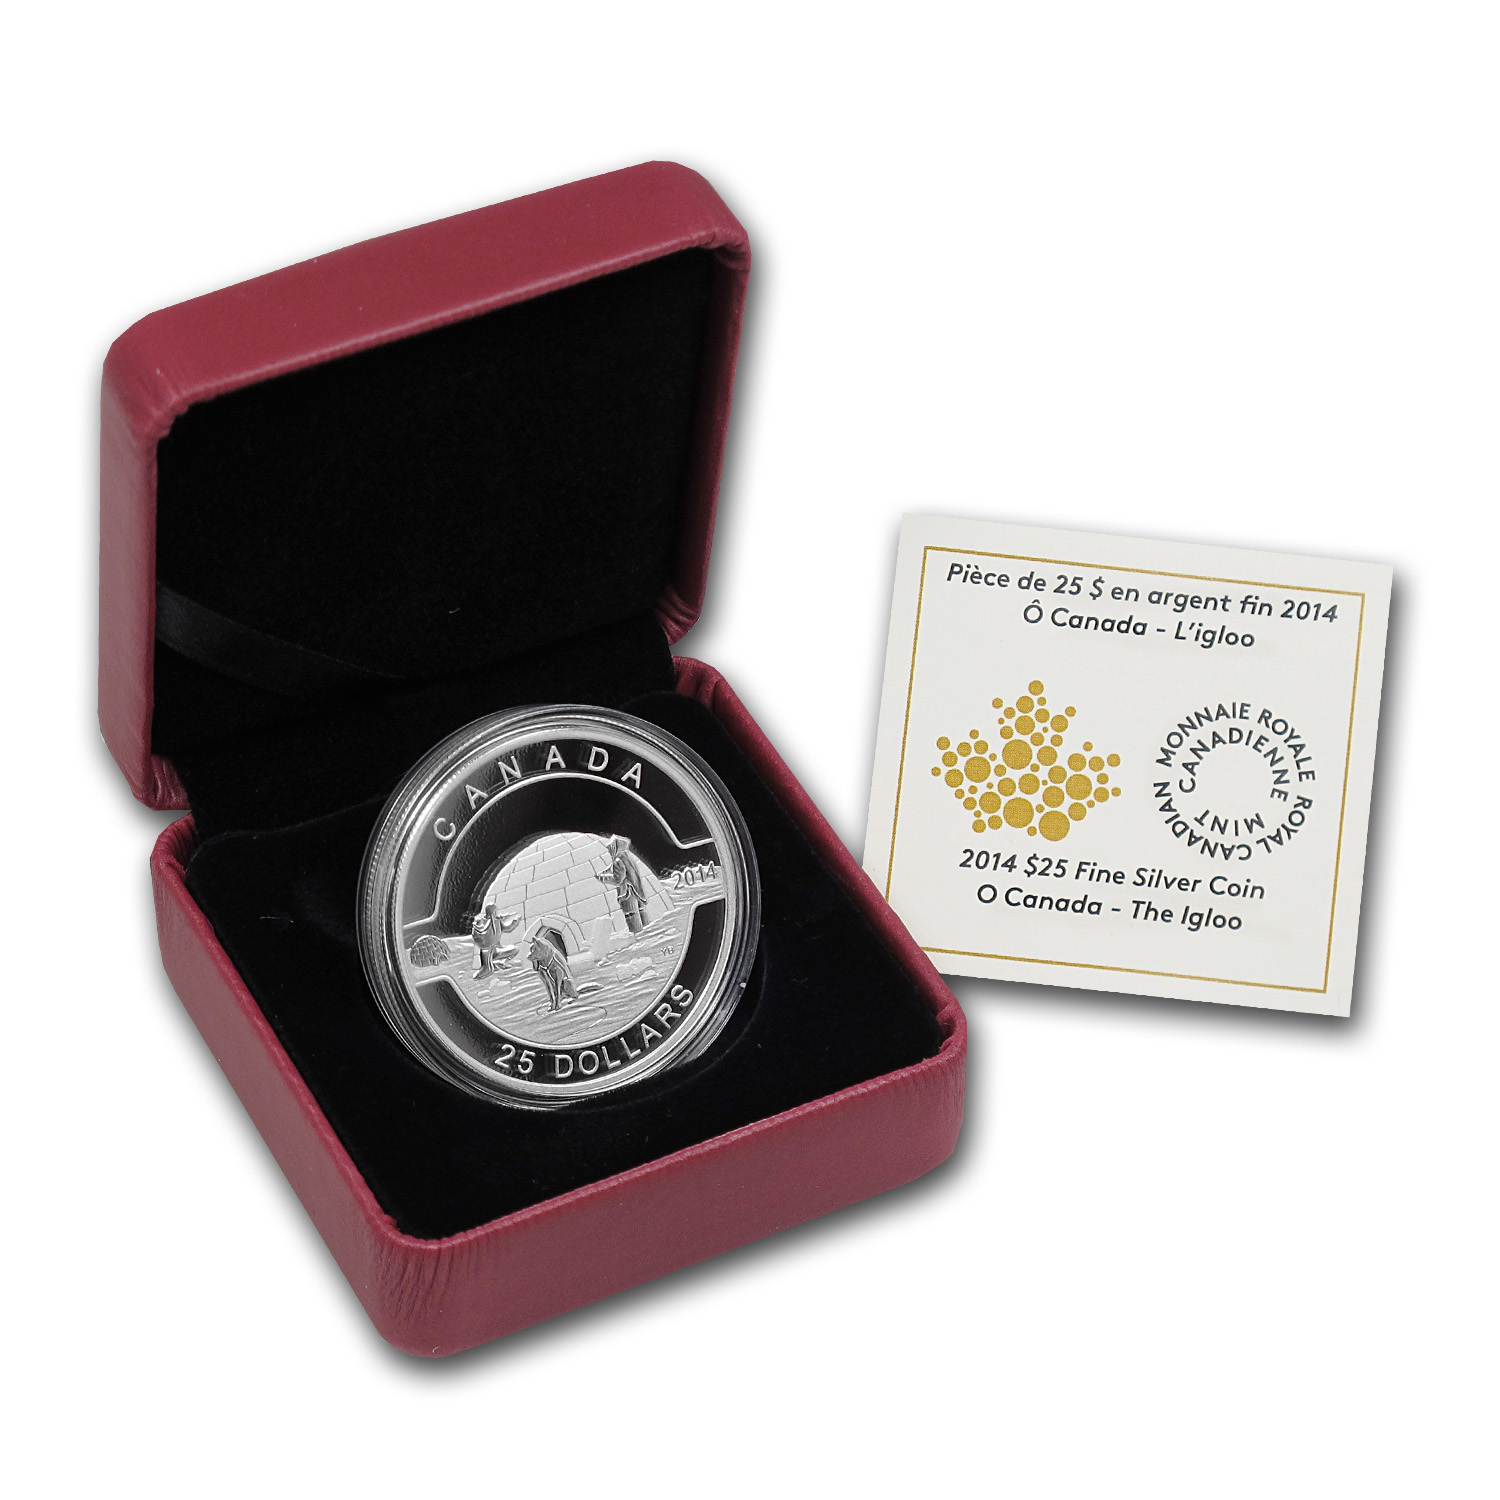 2014 1 oz Silver Canadian $25 Coin - The Igloo